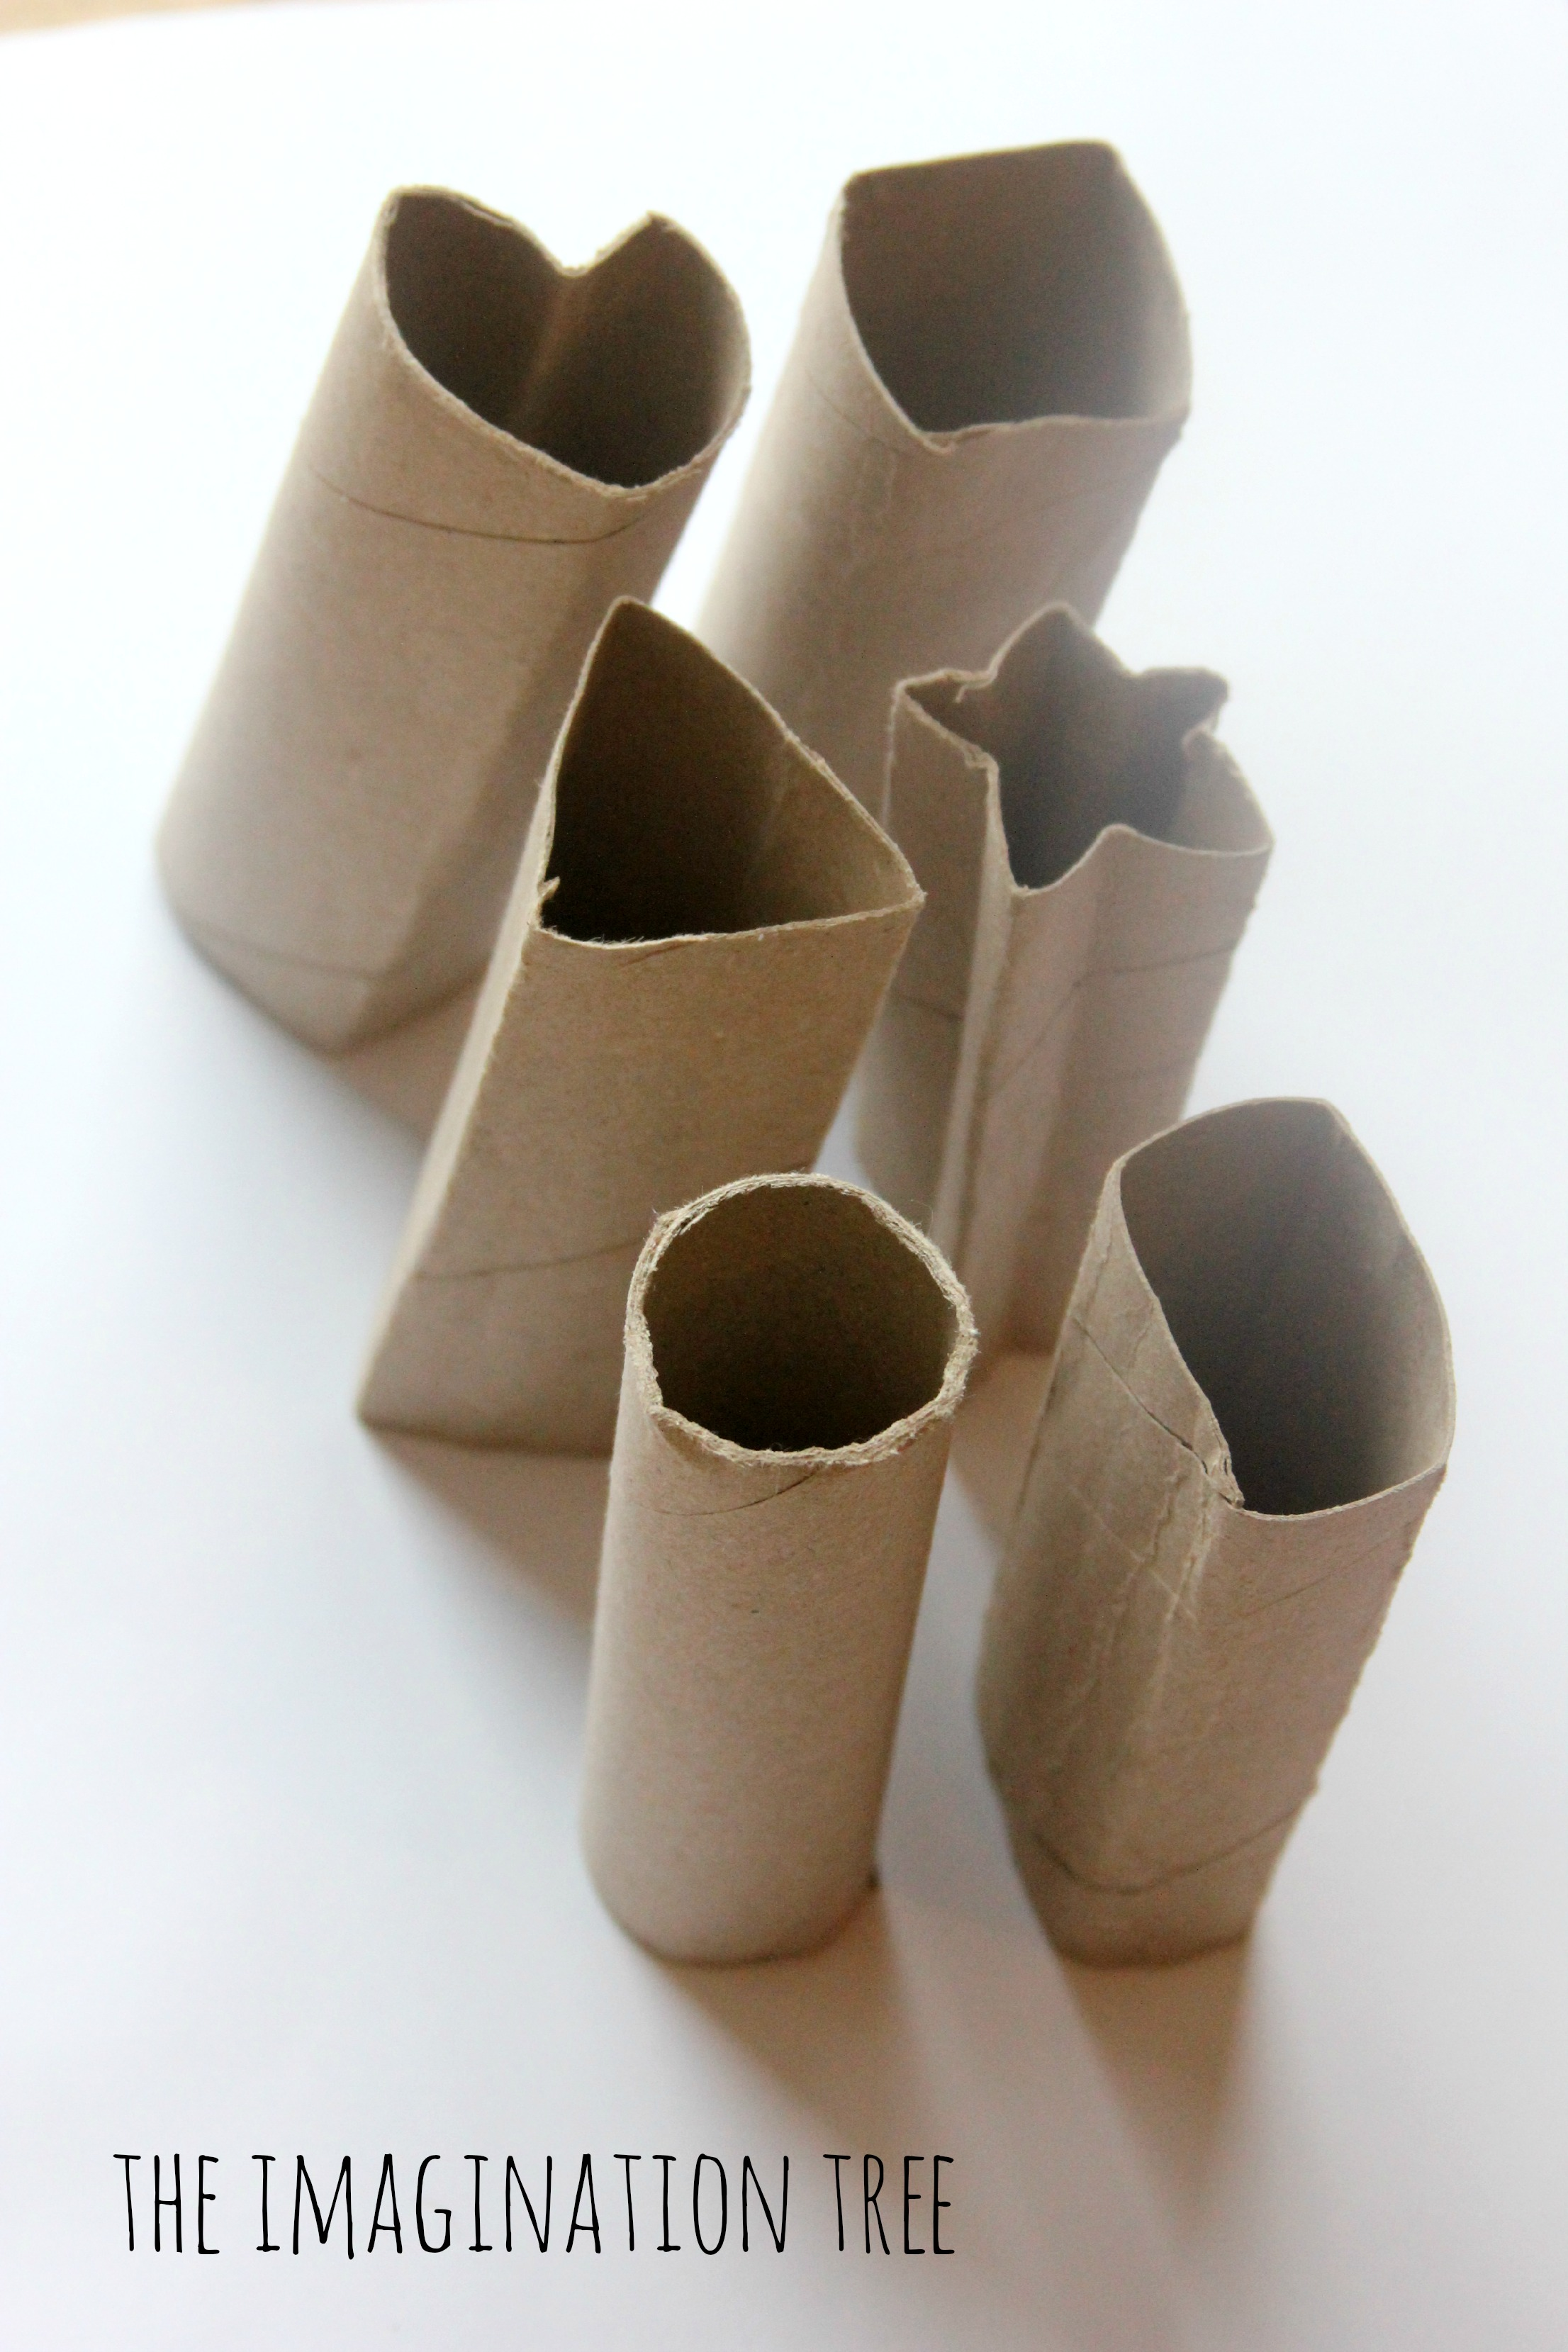 Printing with cardboard shape tubes the imagination tree